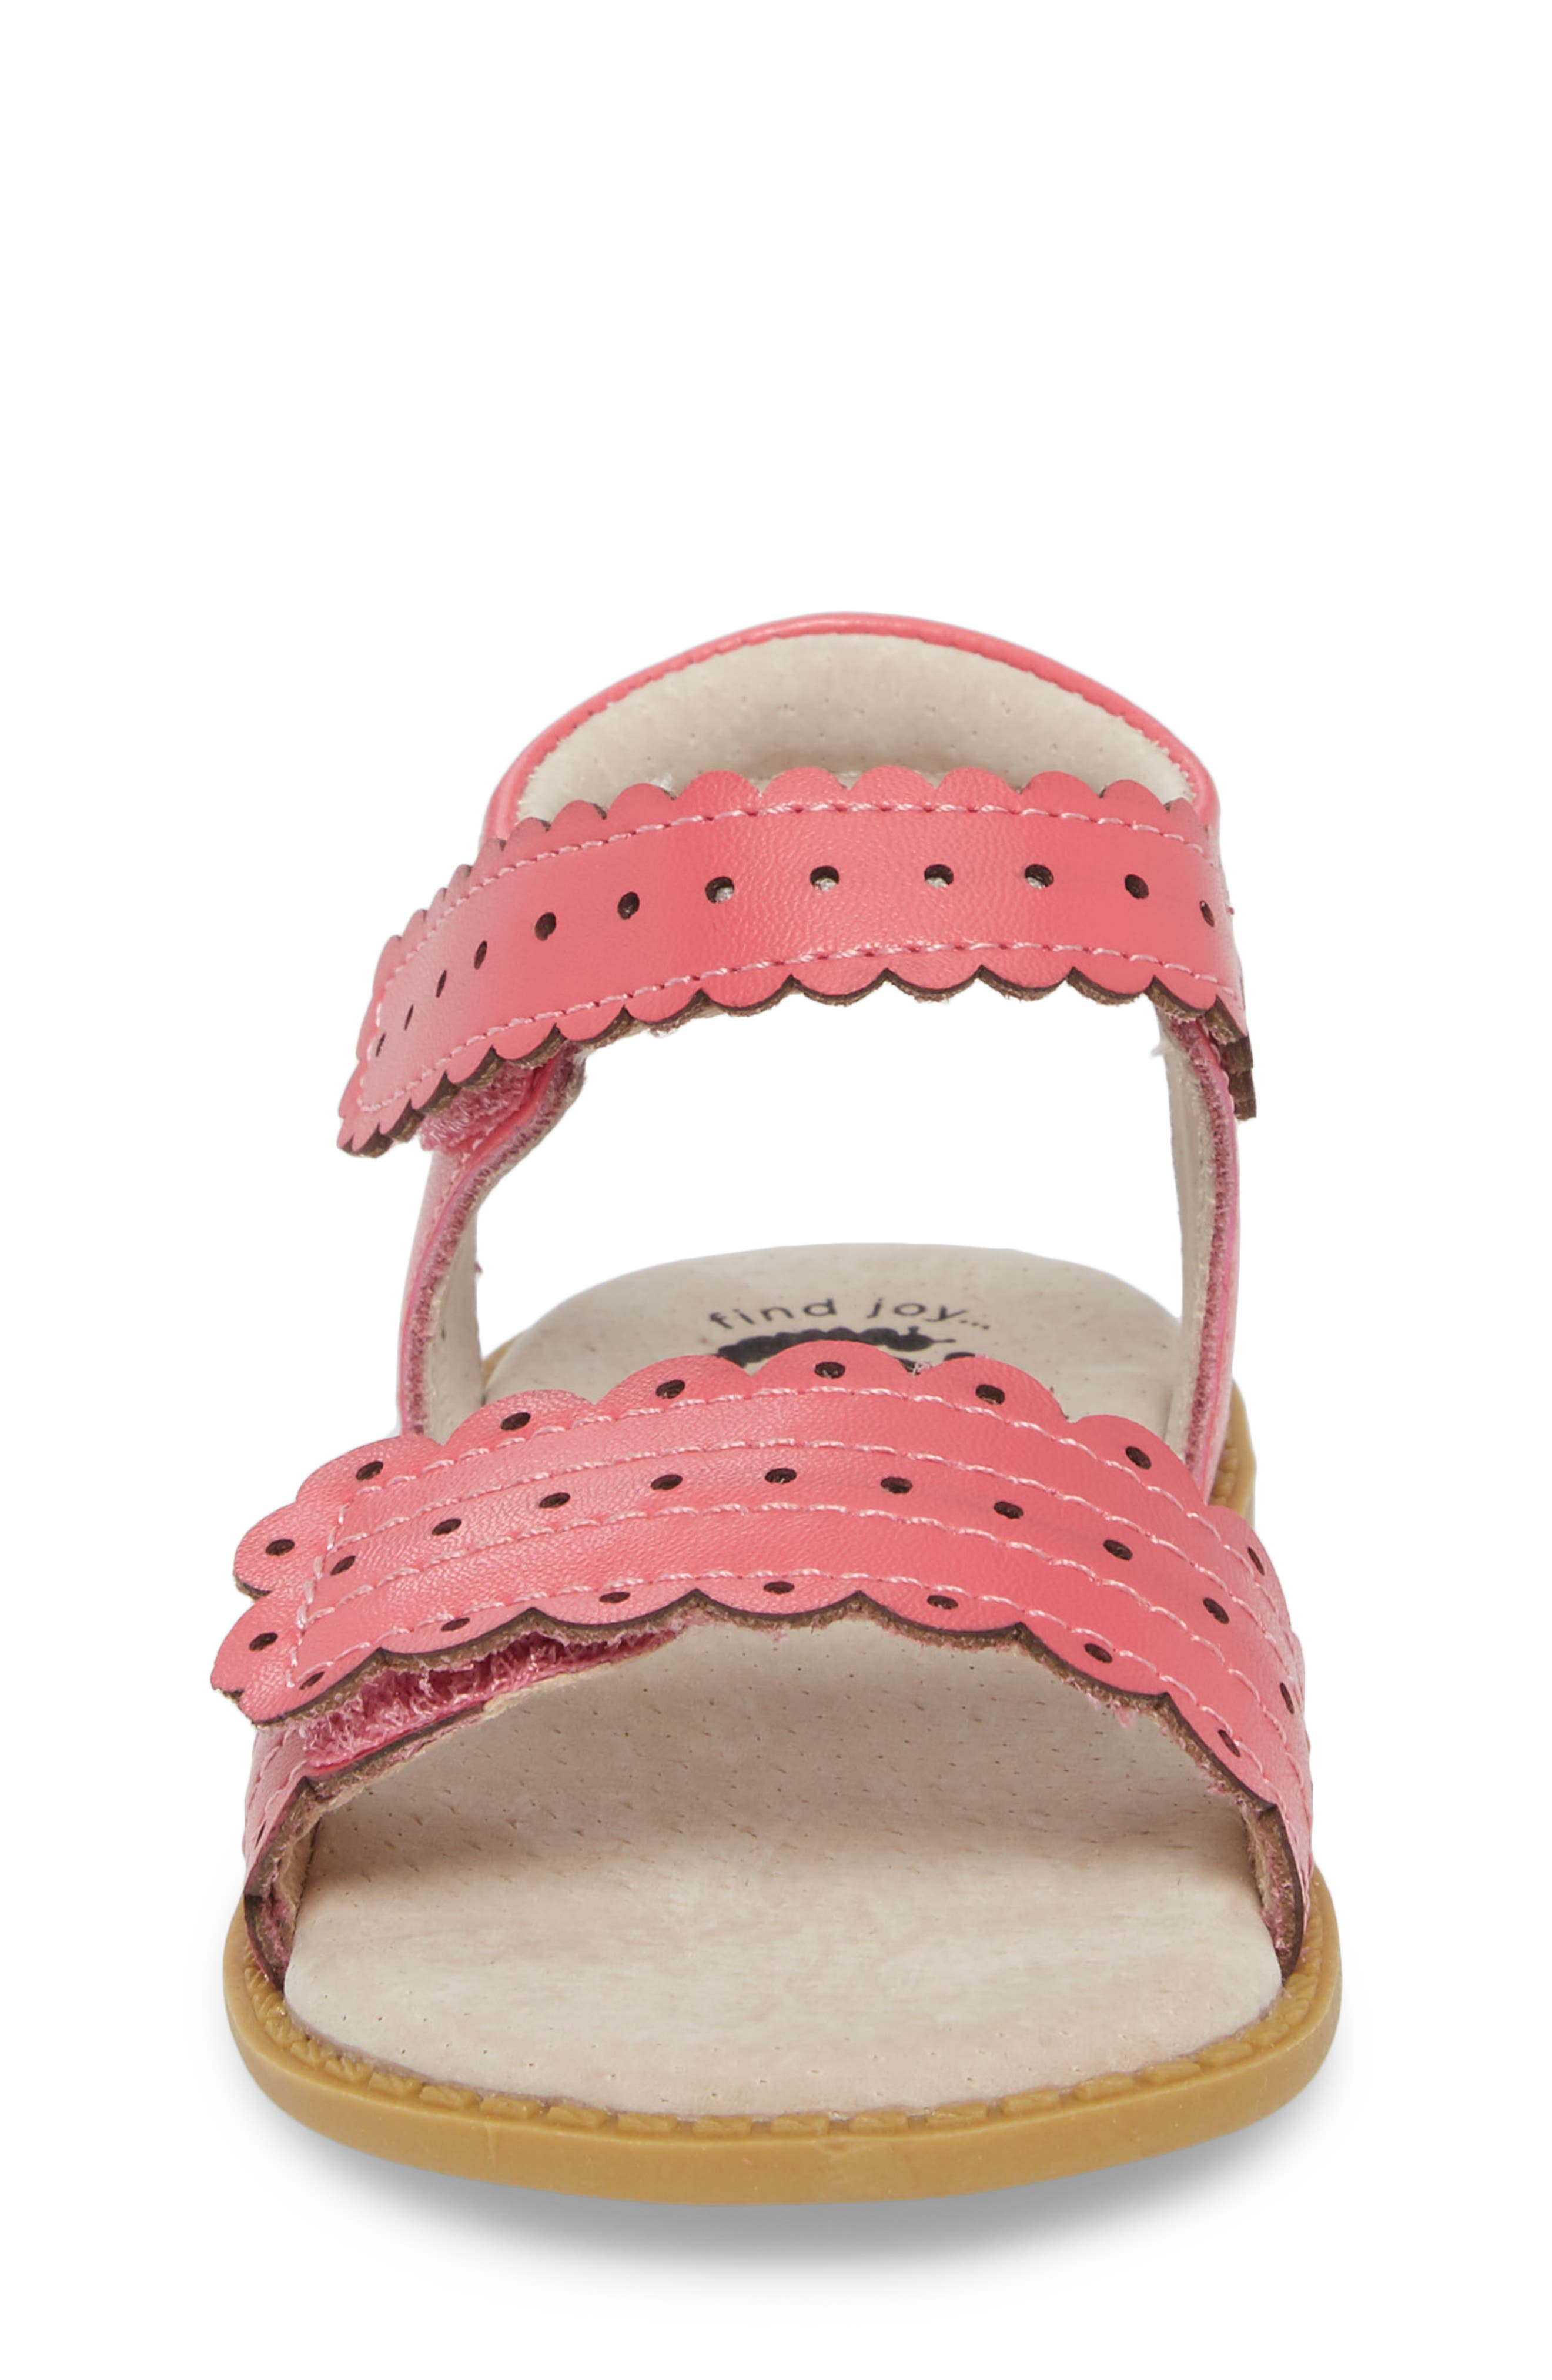 Posey Sandal,                             Alternate thumbnail 4, color,                             Rosy Pink